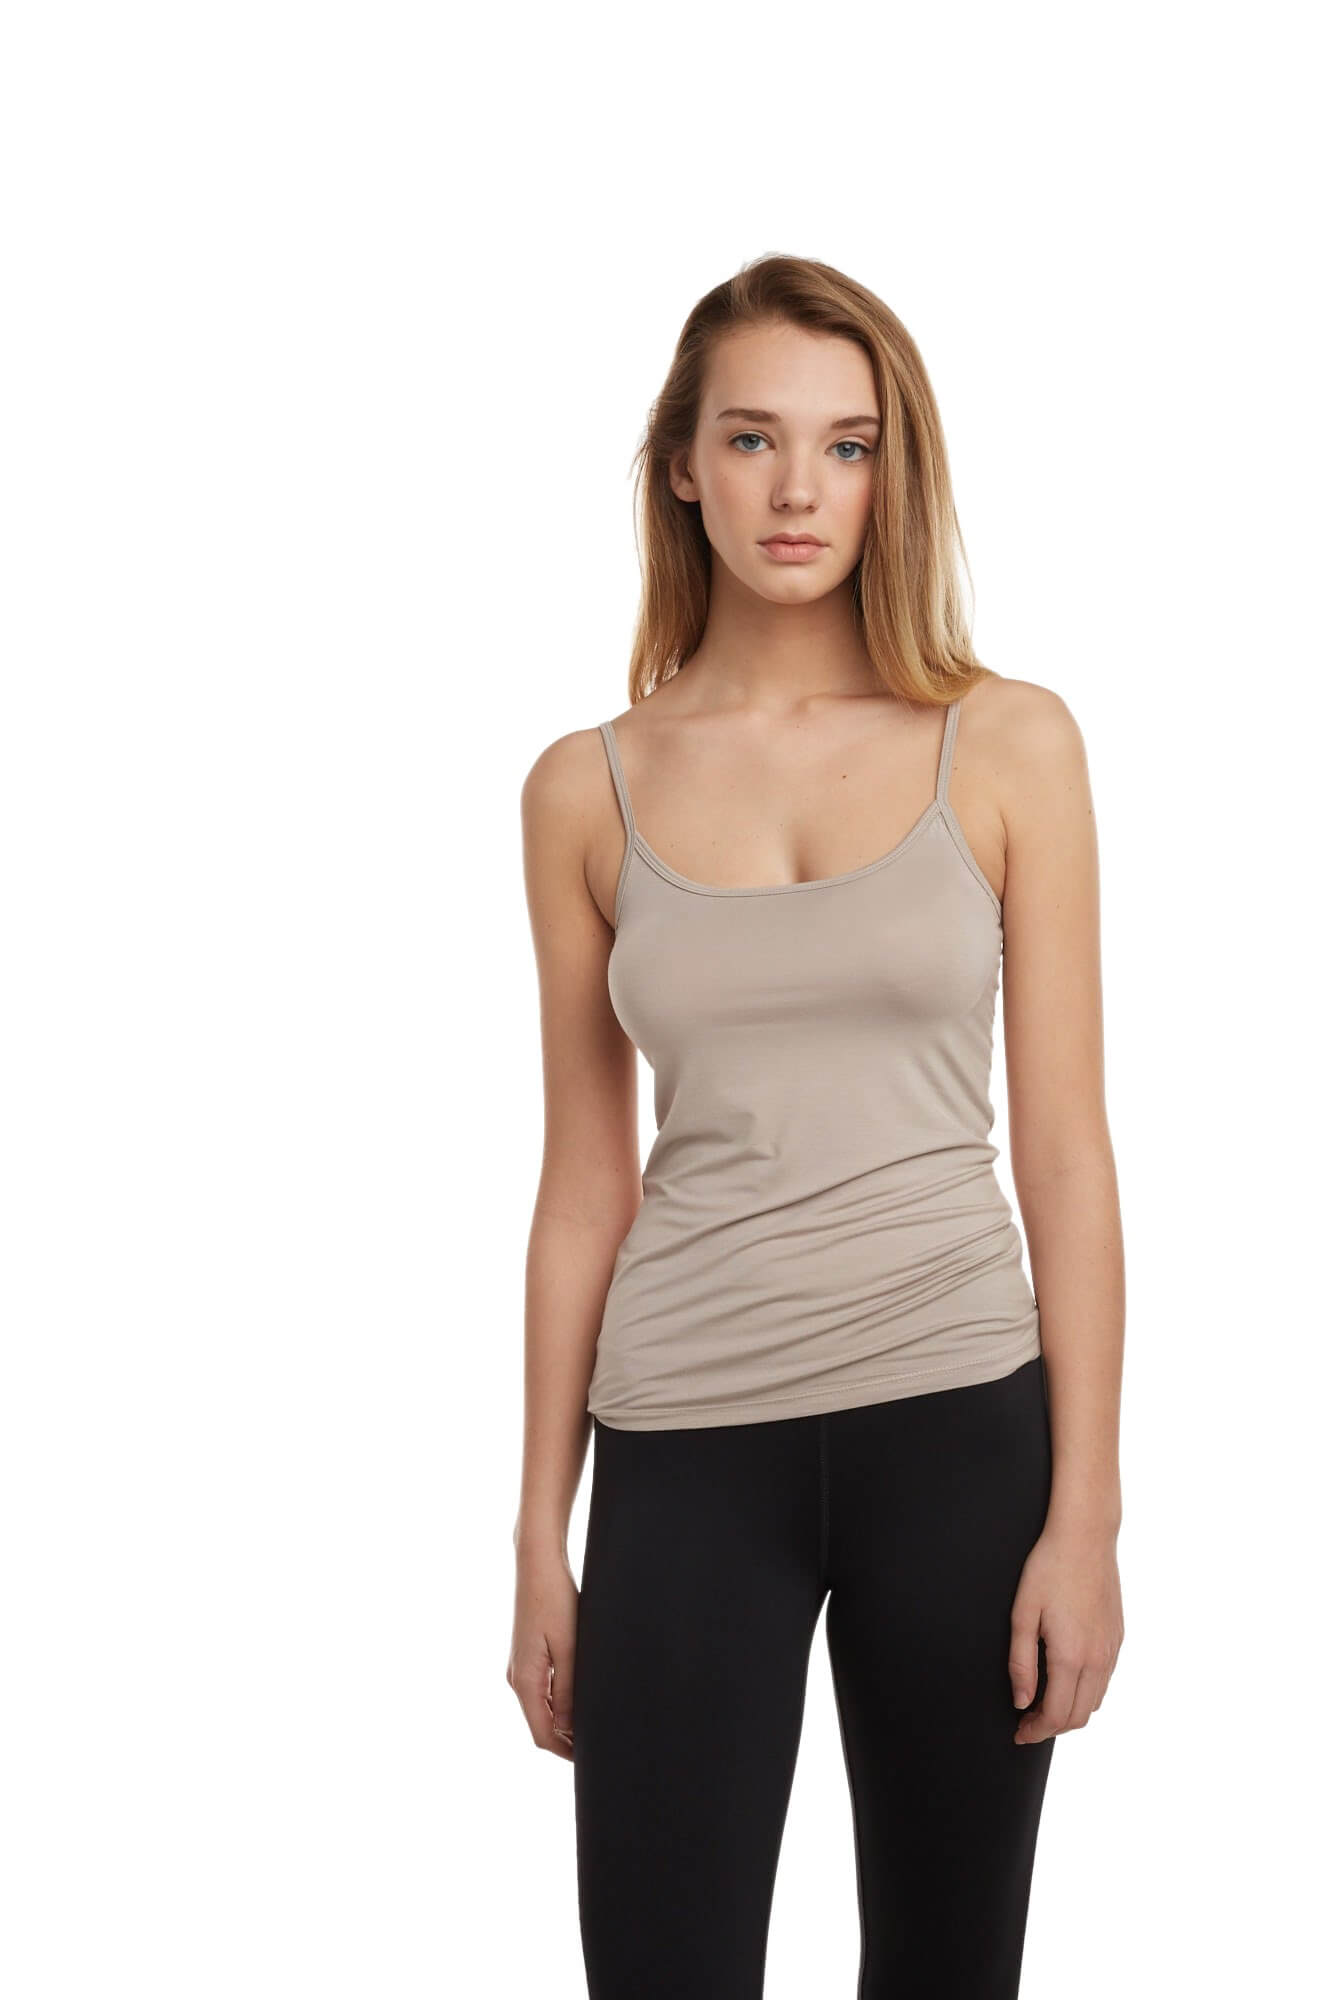 d2d86edbac966 Best Women s Camisole - The Foundation Cami by Mr. Davis